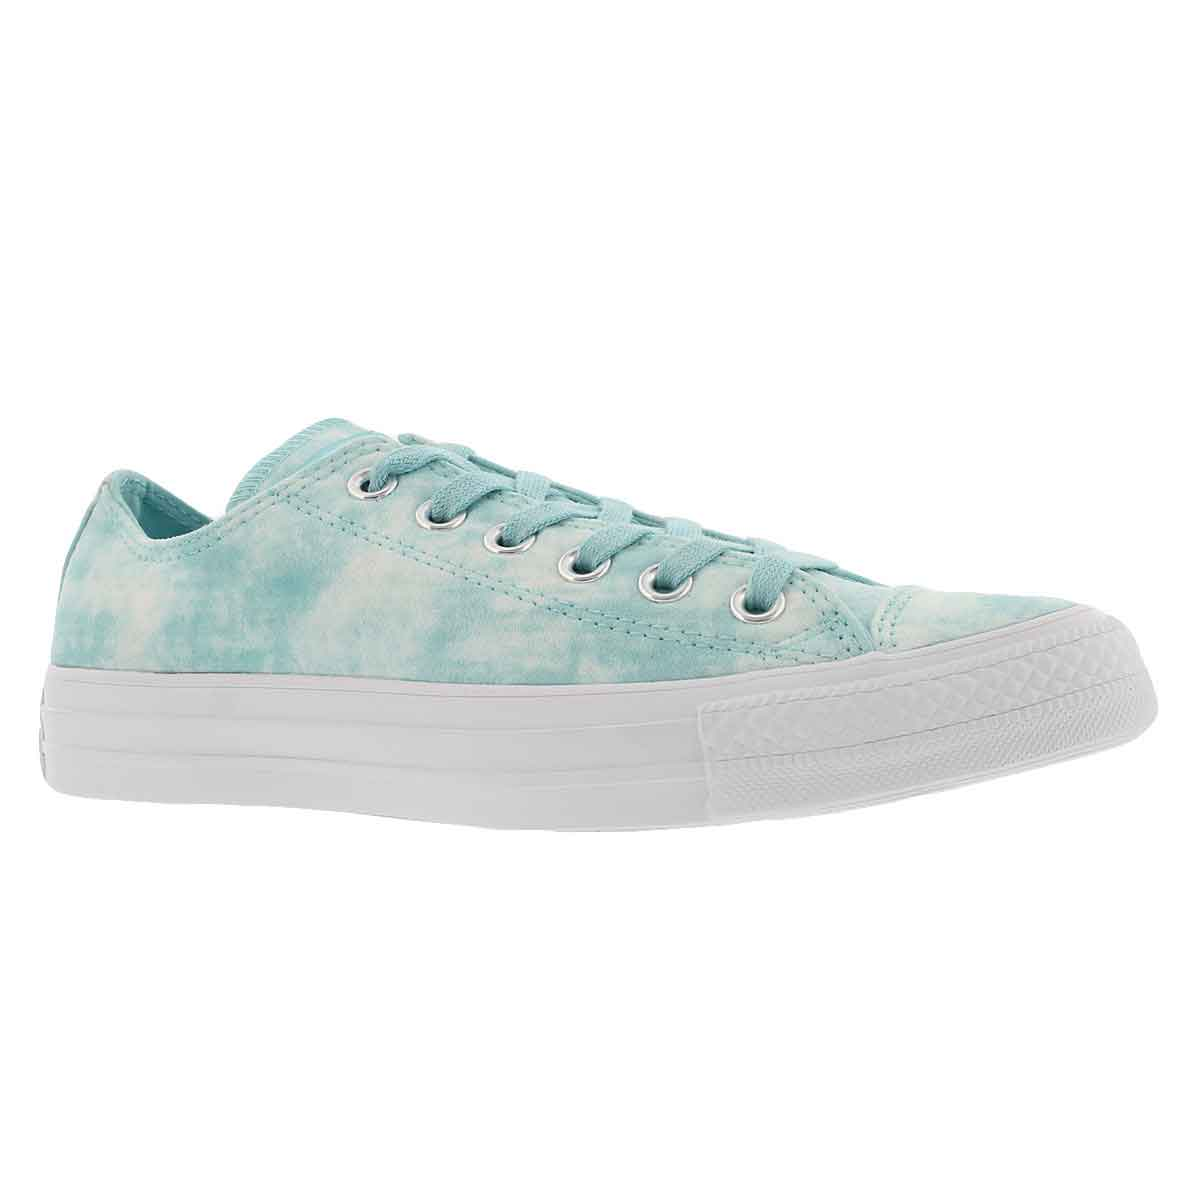 Women's CT ALL STAR PEACHED WASH aqua sneakers